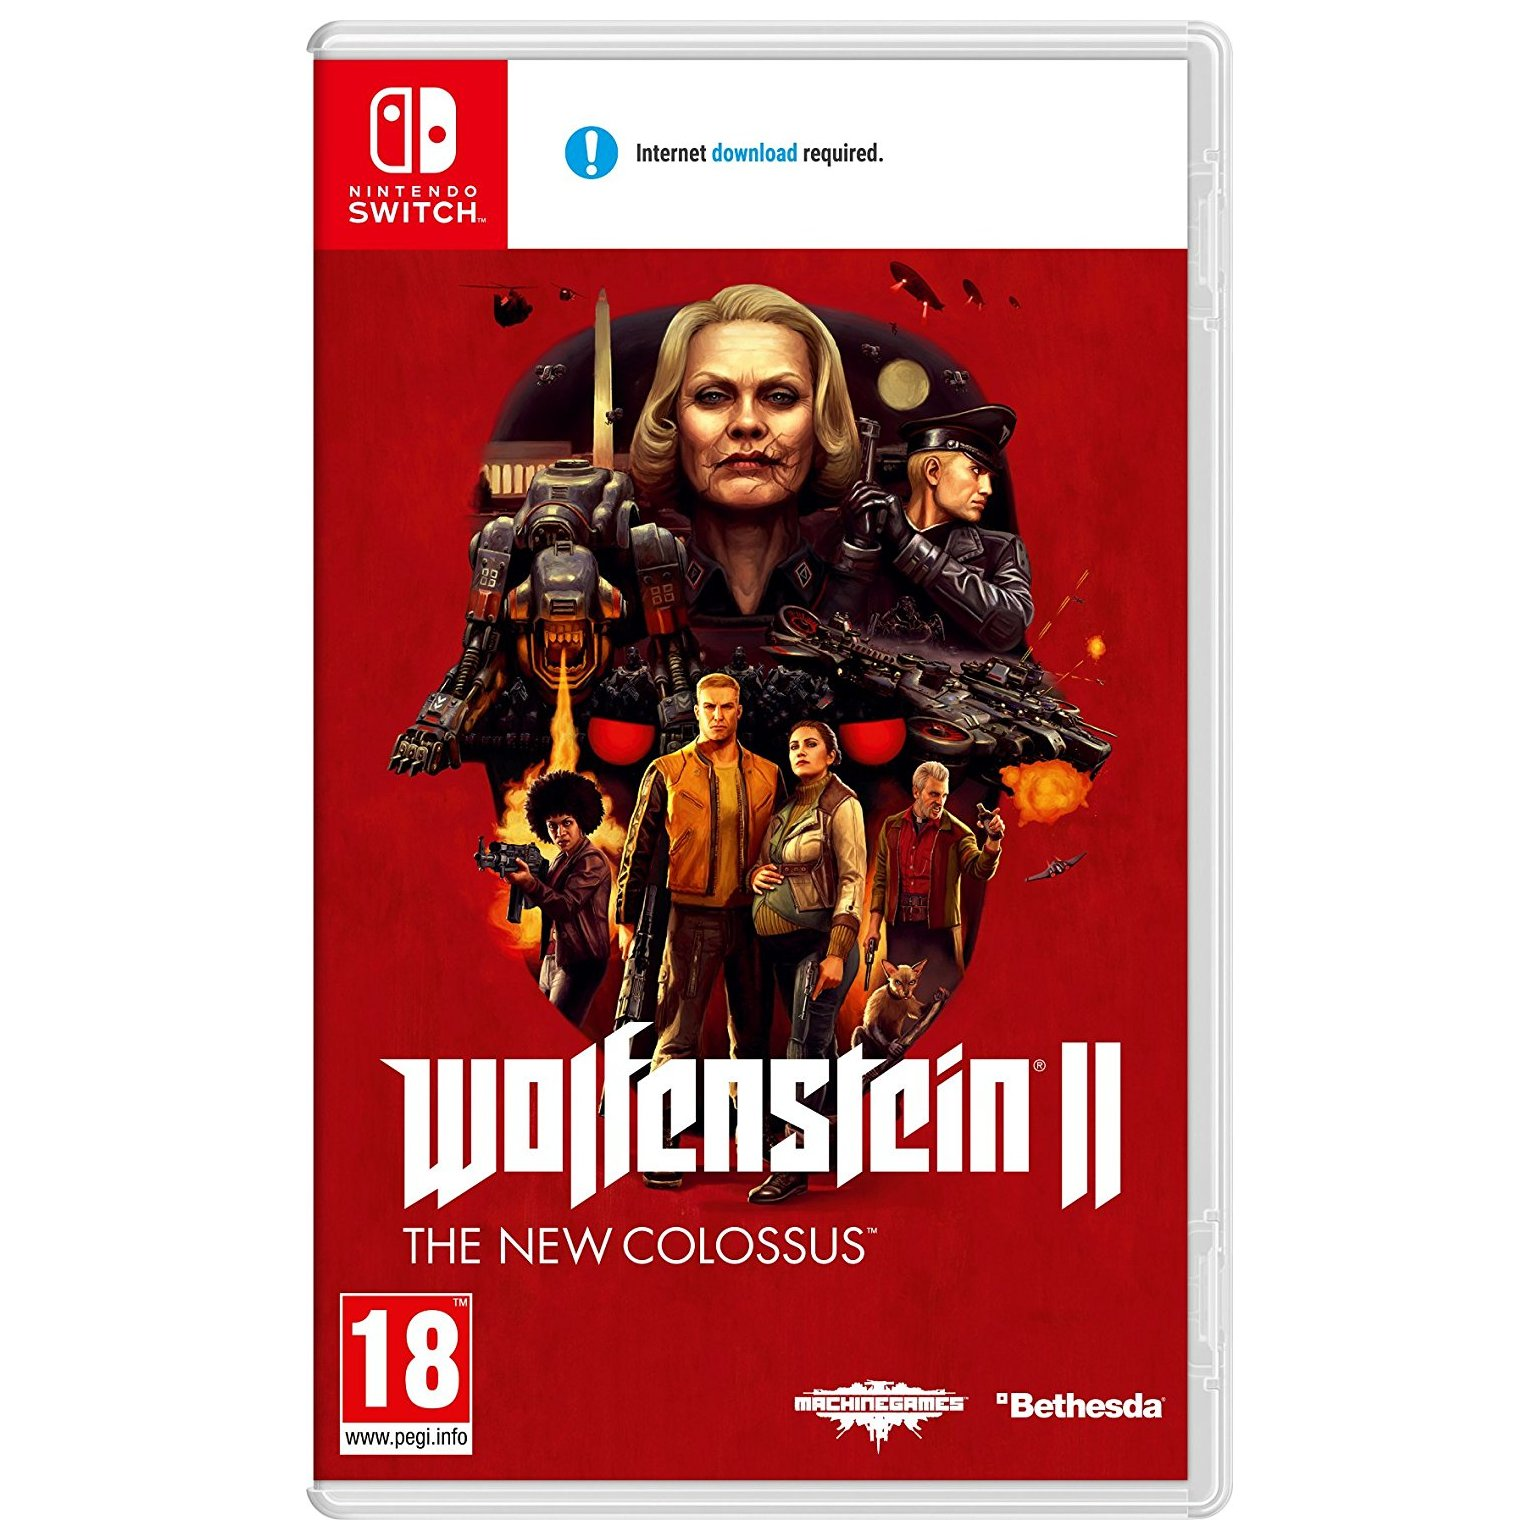 Nintendo Switch Mario Tennis Aces Game Price Specifications English Us Games Wolfenstein Ii The New Colossus